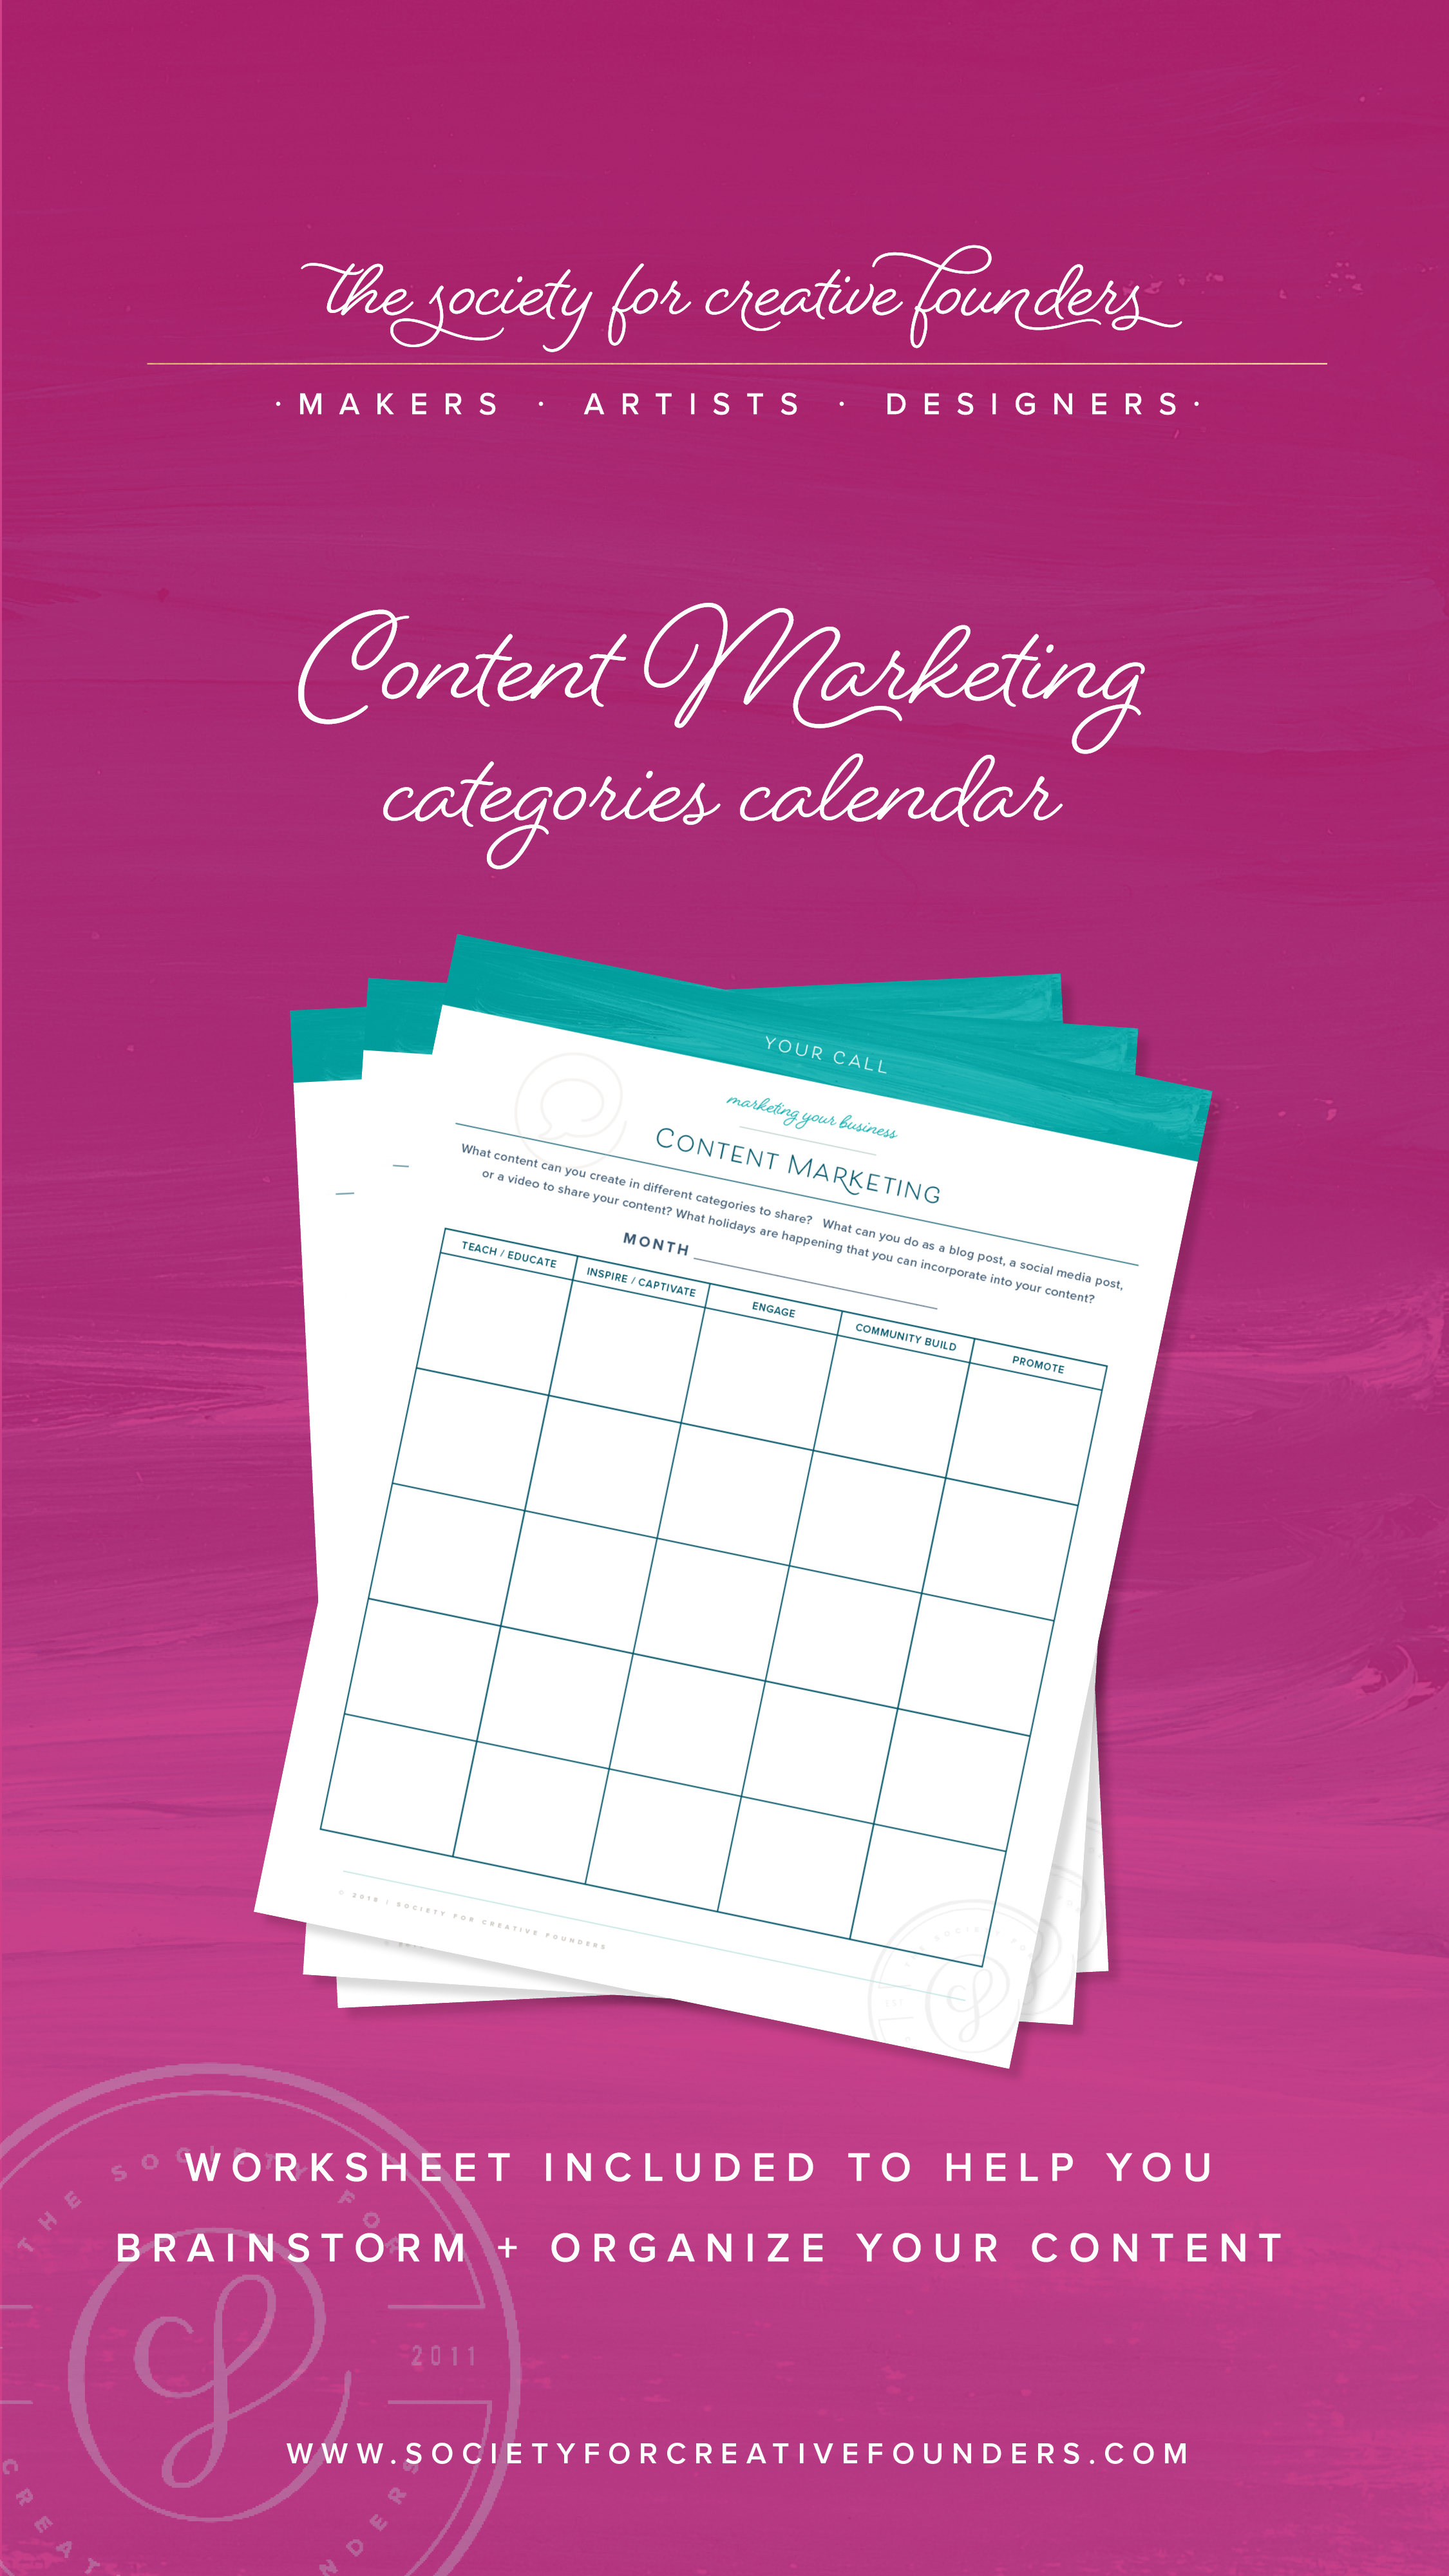 Free Content Marketing Categories Calendar by Society for Creative Founders